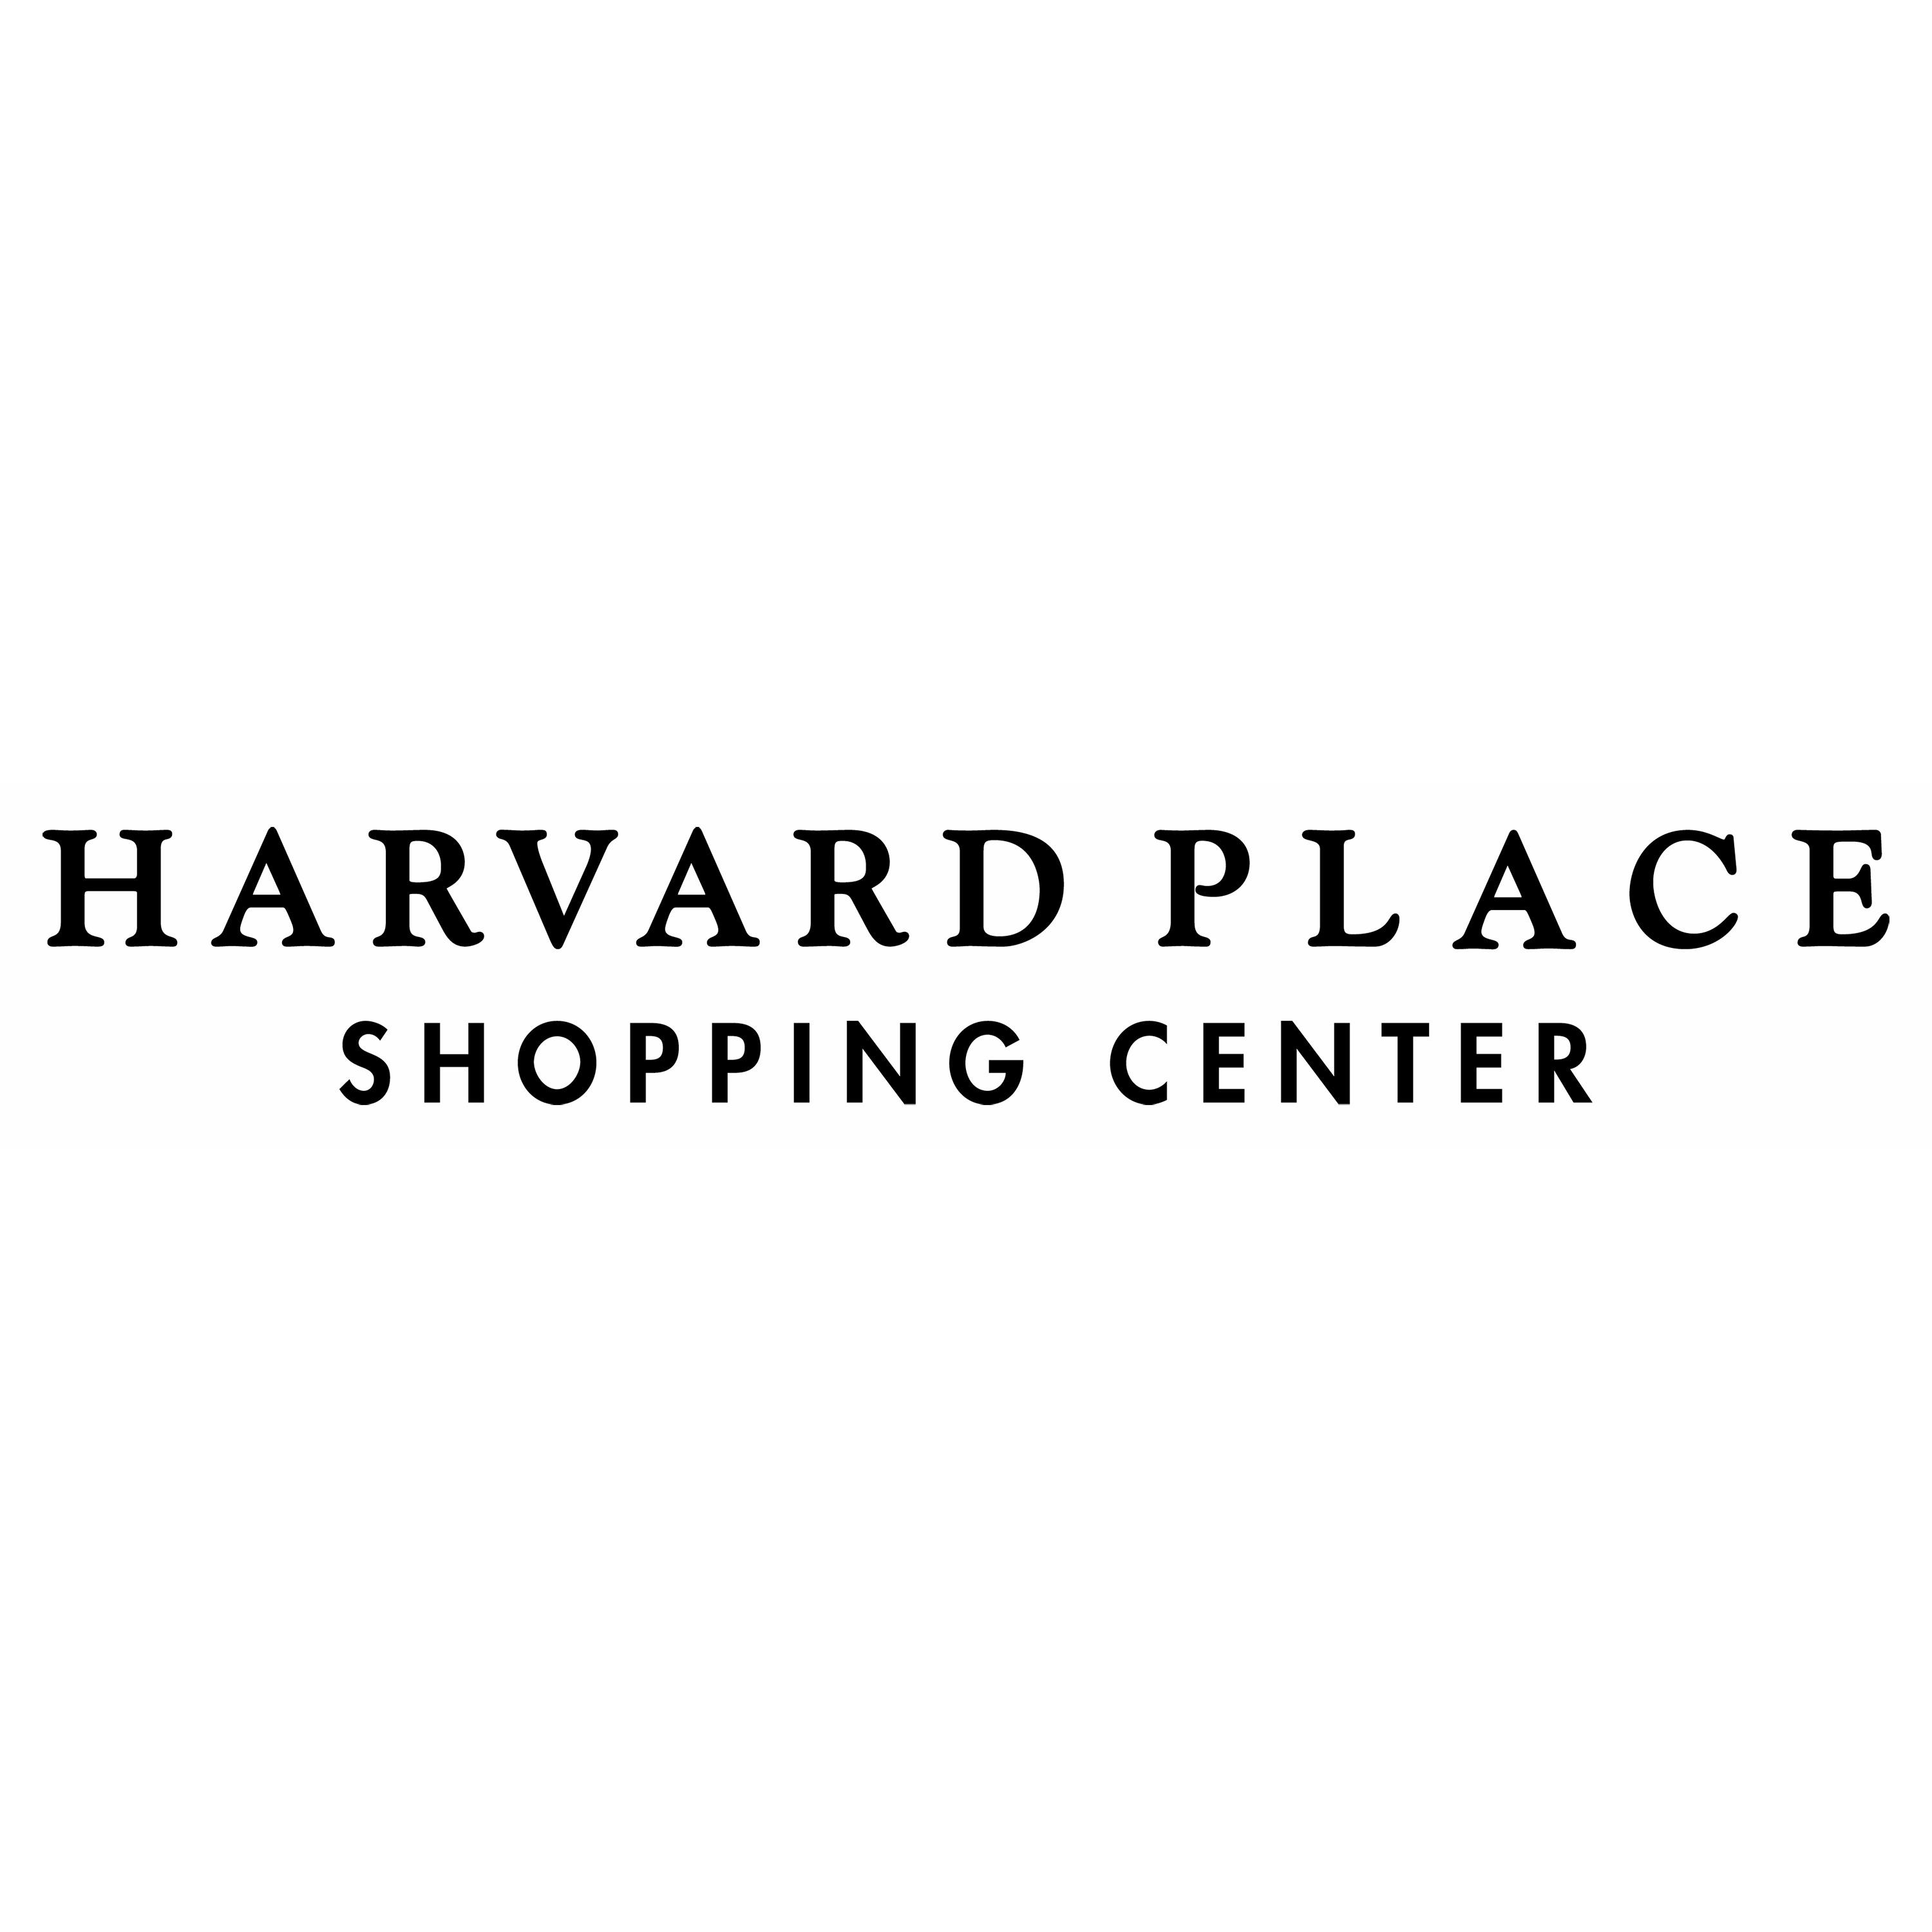 Harvard Place Shopping Center - Irvine, CA - Variety Stores